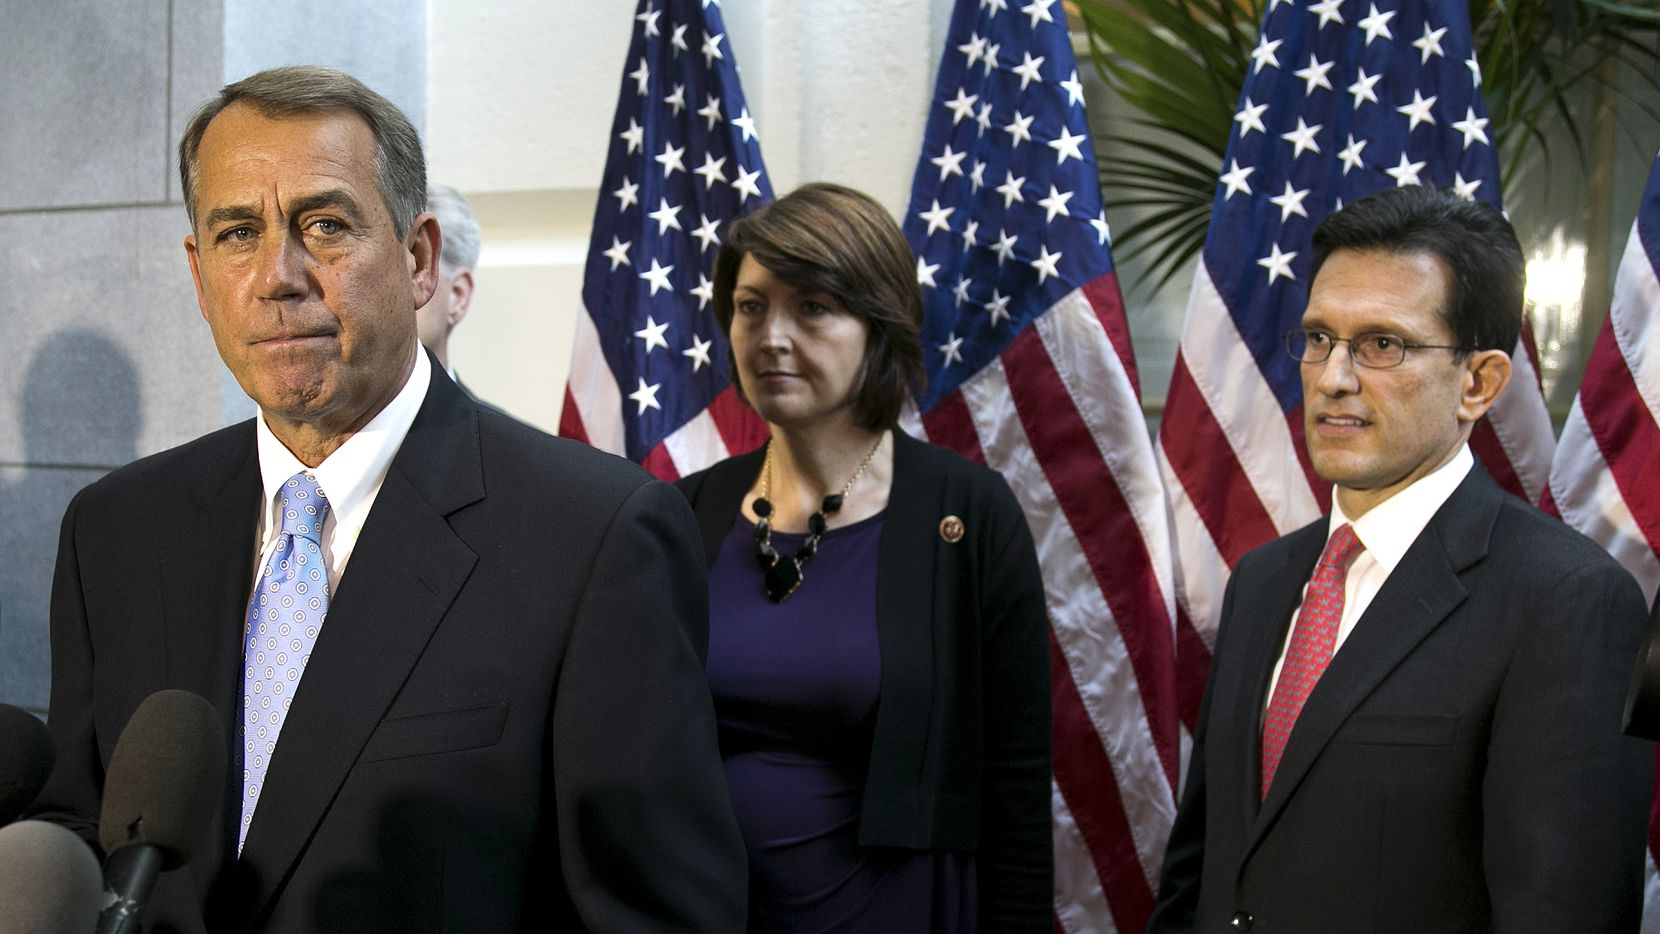 House Speaker John Boehner (R-Ohio) speaks at a news conference following a caucus meeting at the Capitol, in Washington, Oct. 15  2013. Republican leaders struggled to craft a proposal to end the government shutdown and change the health care law on Tuesday, after a plan presented to the rank and file failed to win enough support. From right: House Majority Leader Eric Cantor (R-Va.), Rep. Cathy McMorris Rodgers (R-Wash.) and Boehner. (Doug Mills/The New York Times)